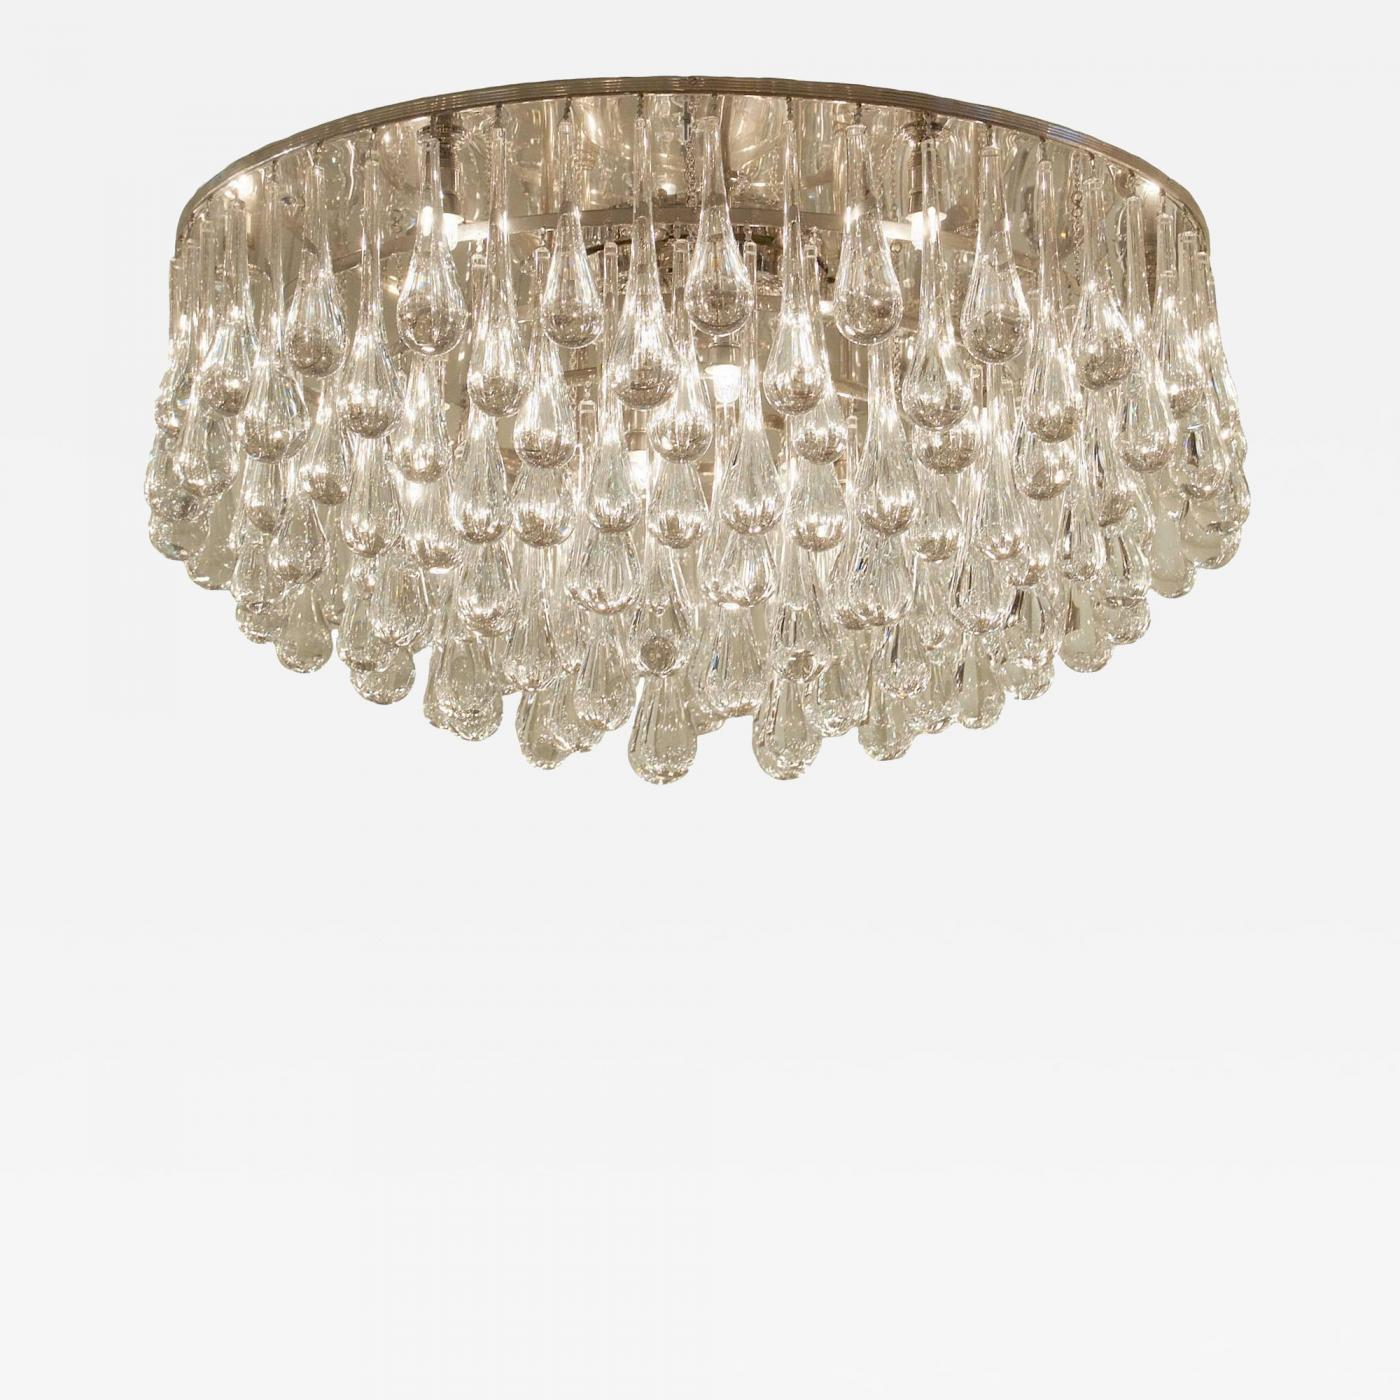 mount transitional lighting polished brizzo picture square crystal of chandelier flush chrome chandeliers lights stores bossolo